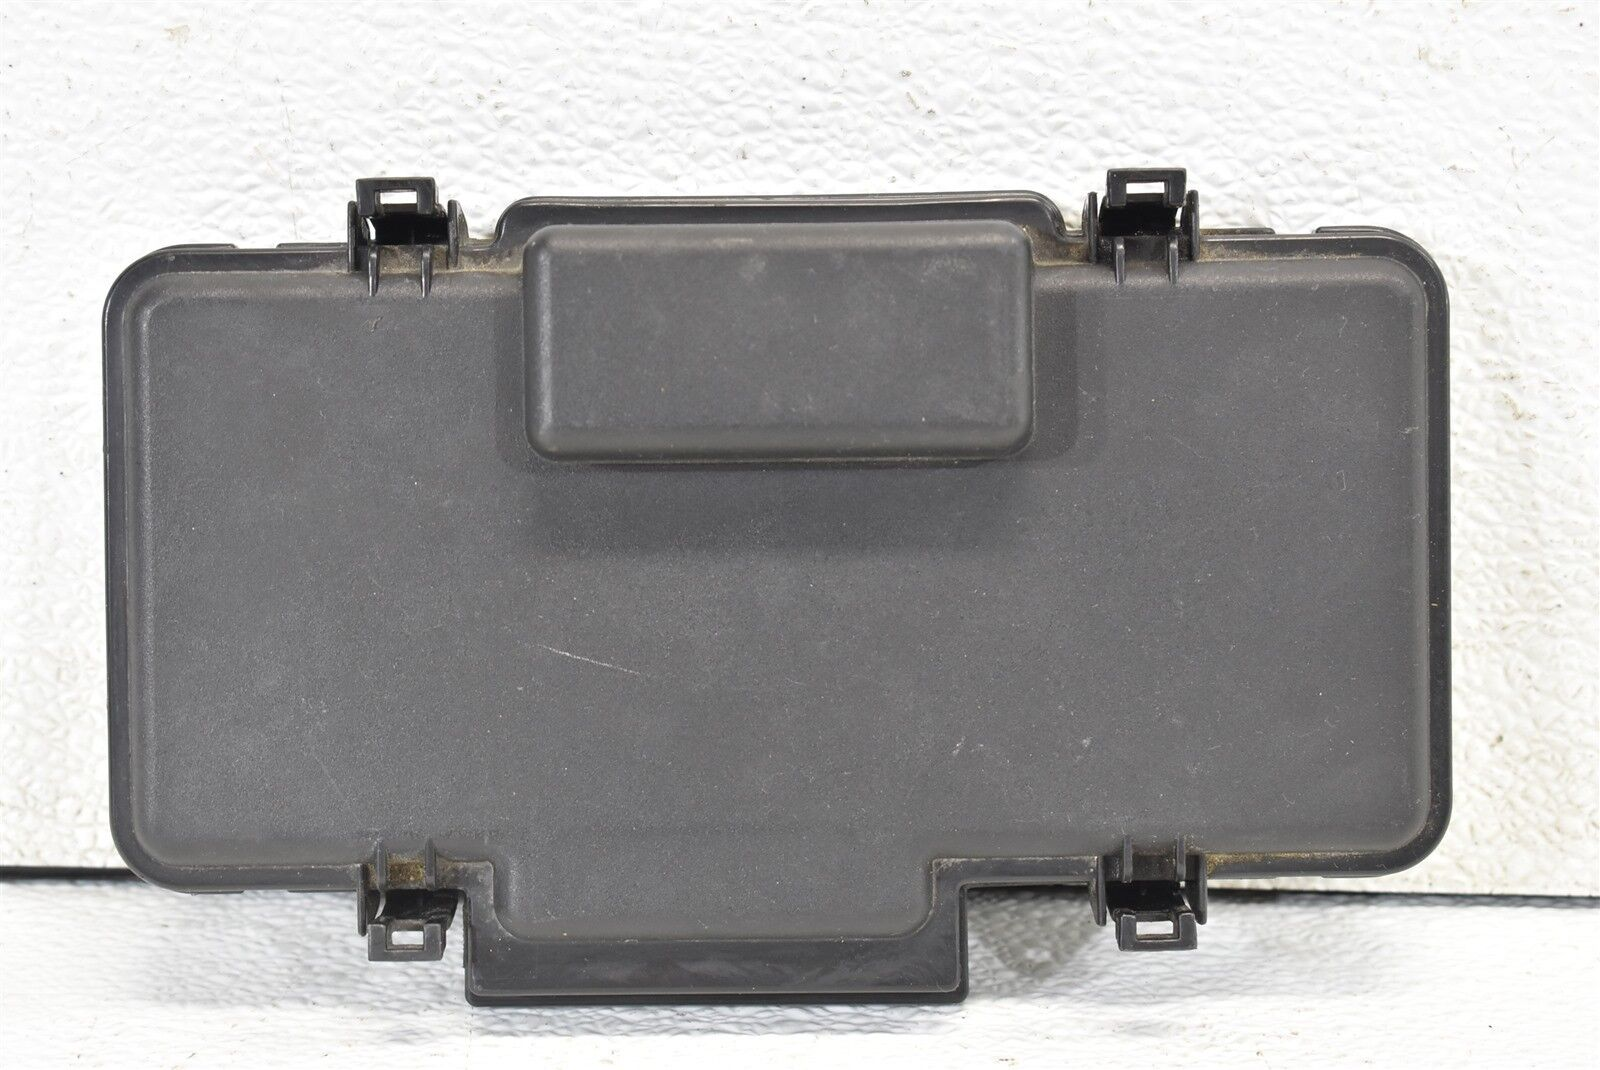 2002-2006 Acura RSX Type S Fuse Box Cover Lid Top Panel 02-06